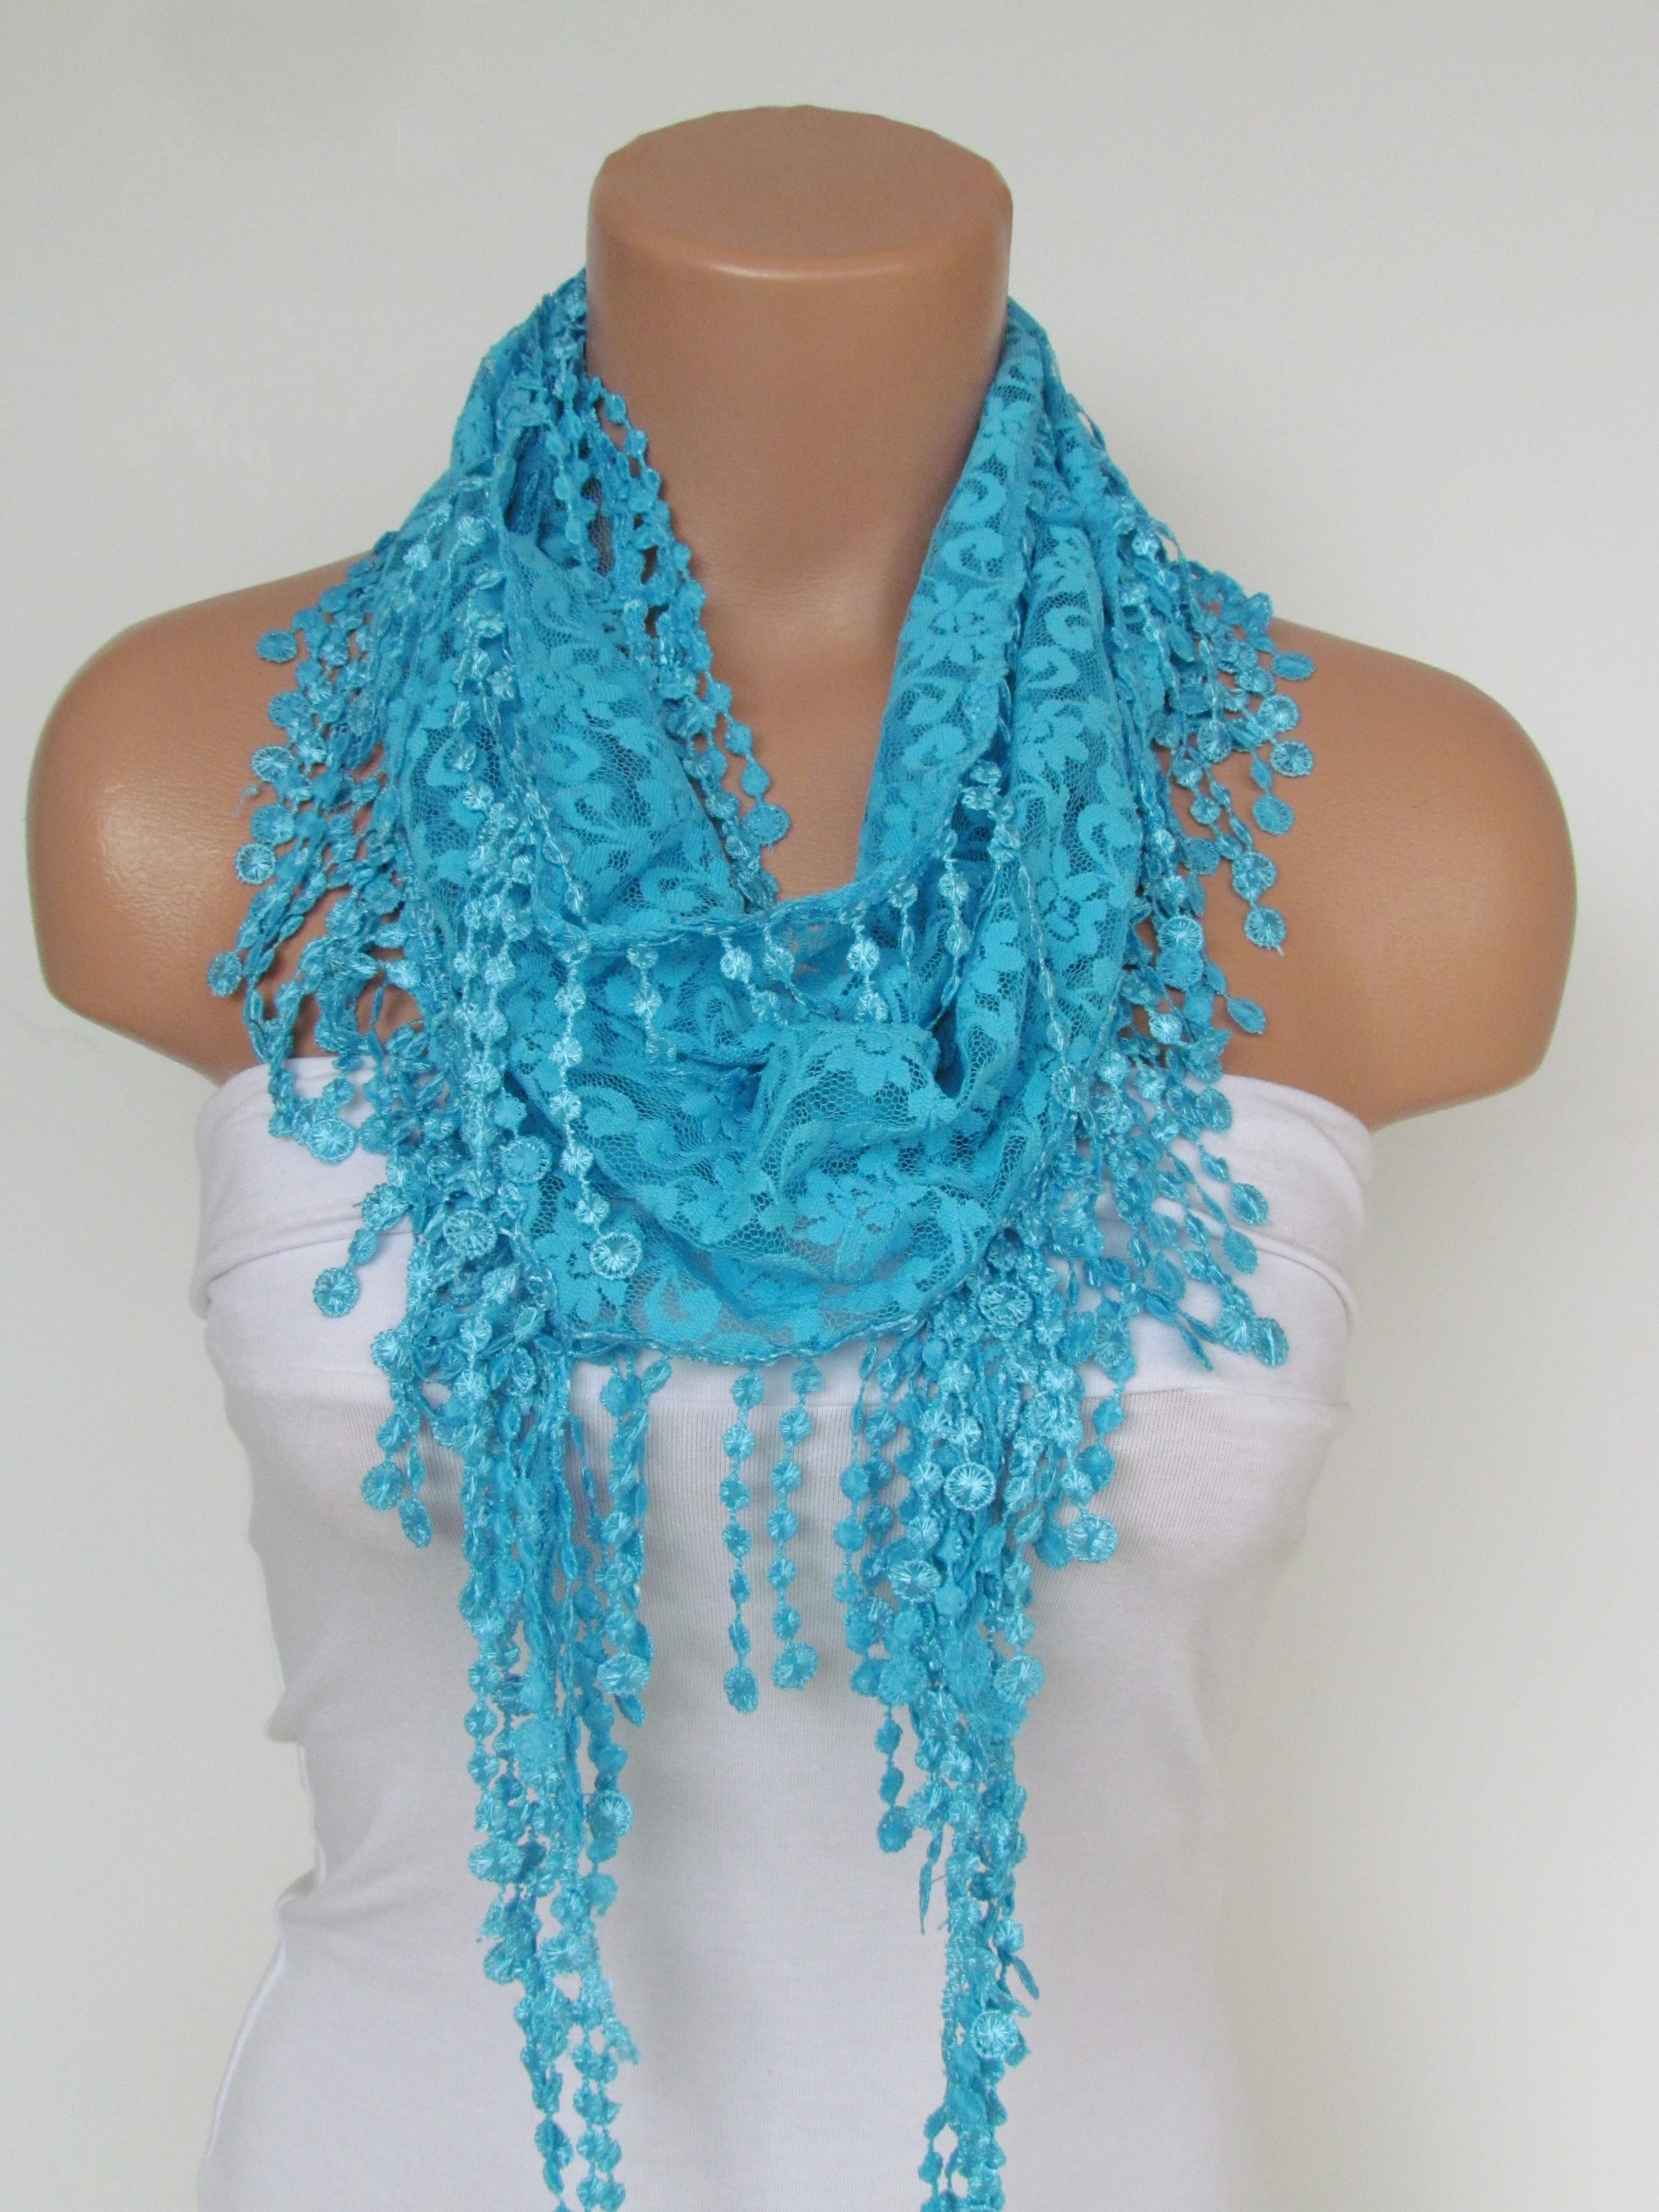 92b87fc01426b Turquoise Lace Scarf With Fringe New Season Scarf-Headband-Necklace- Infinity  Scarf- Accessory-Long on Luulla